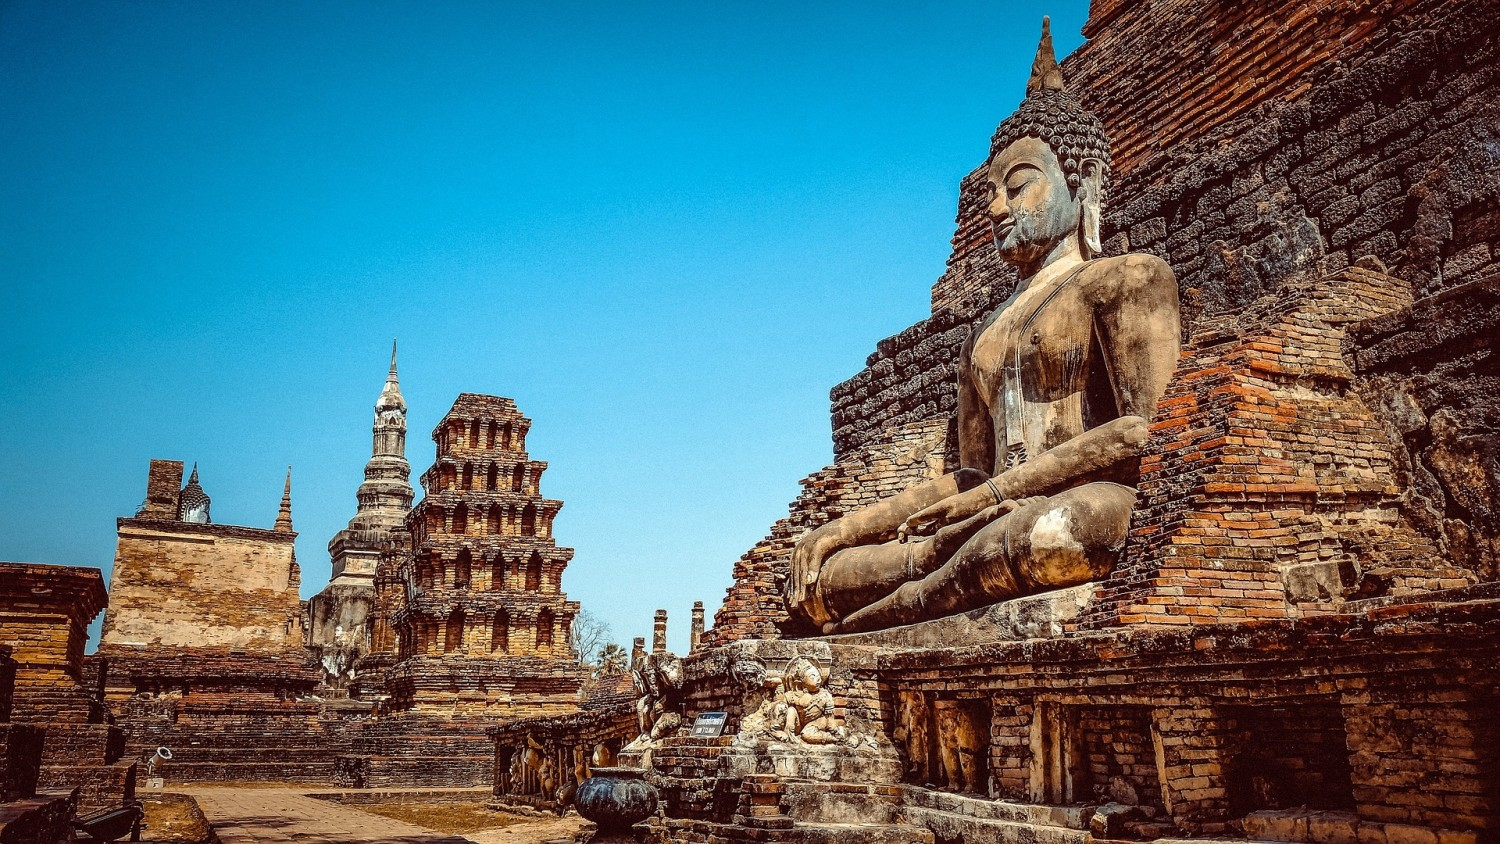 Sukothai, Thailand Four awesome Southeast Asia travel itineraries I Photography I Itinerary I Landscape I Food I Architecture I Laos I Thailand I Cambodia I Myanmar I Malaysia I Vietnam. Read the full travel guide now #travel #backpacking